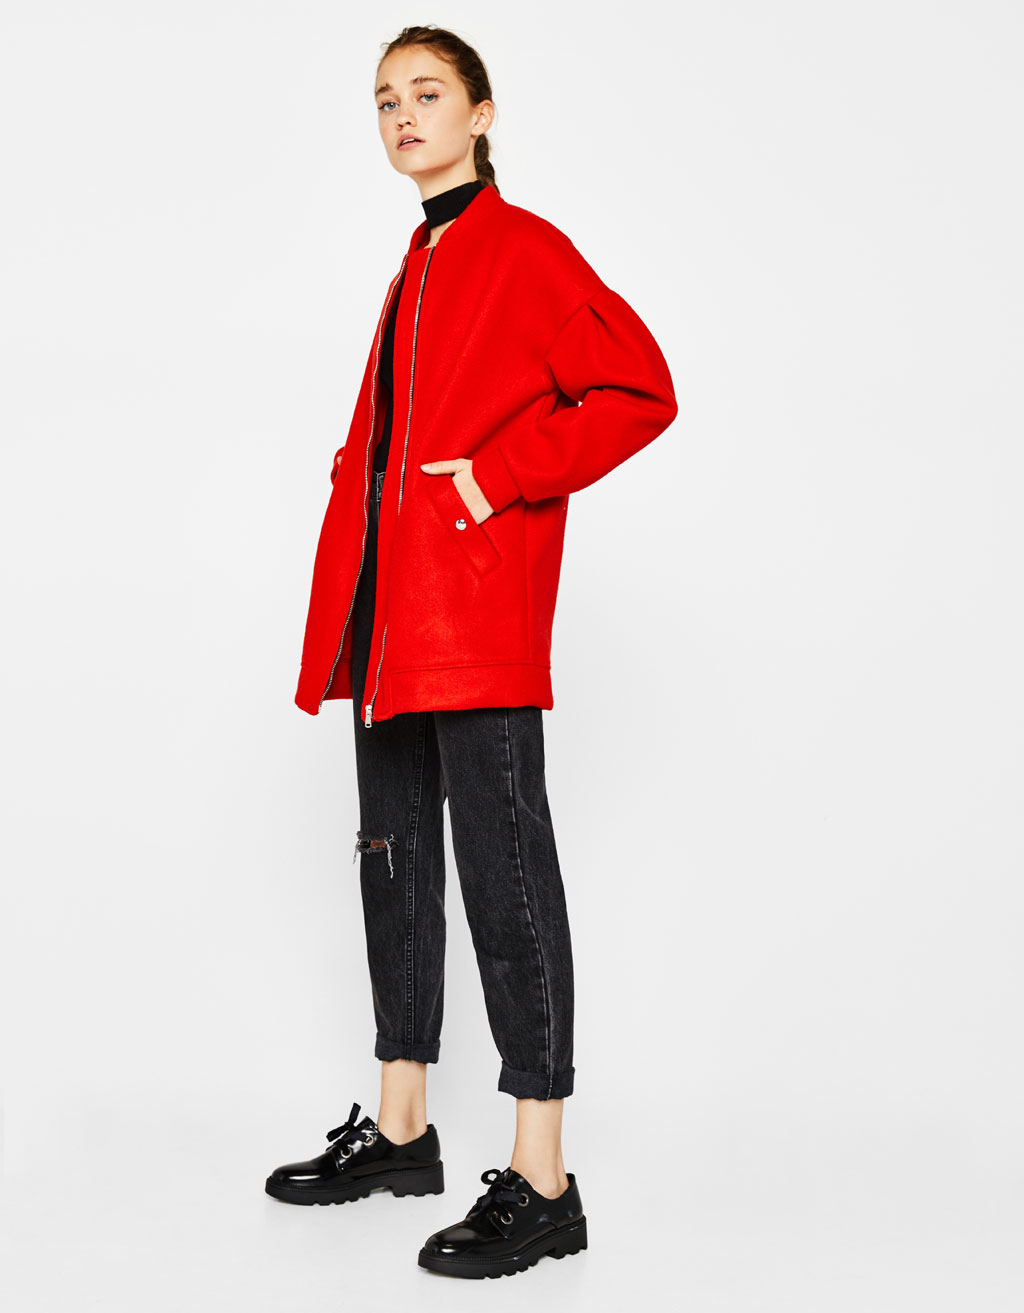 Bomber jacket with puffy sleeves